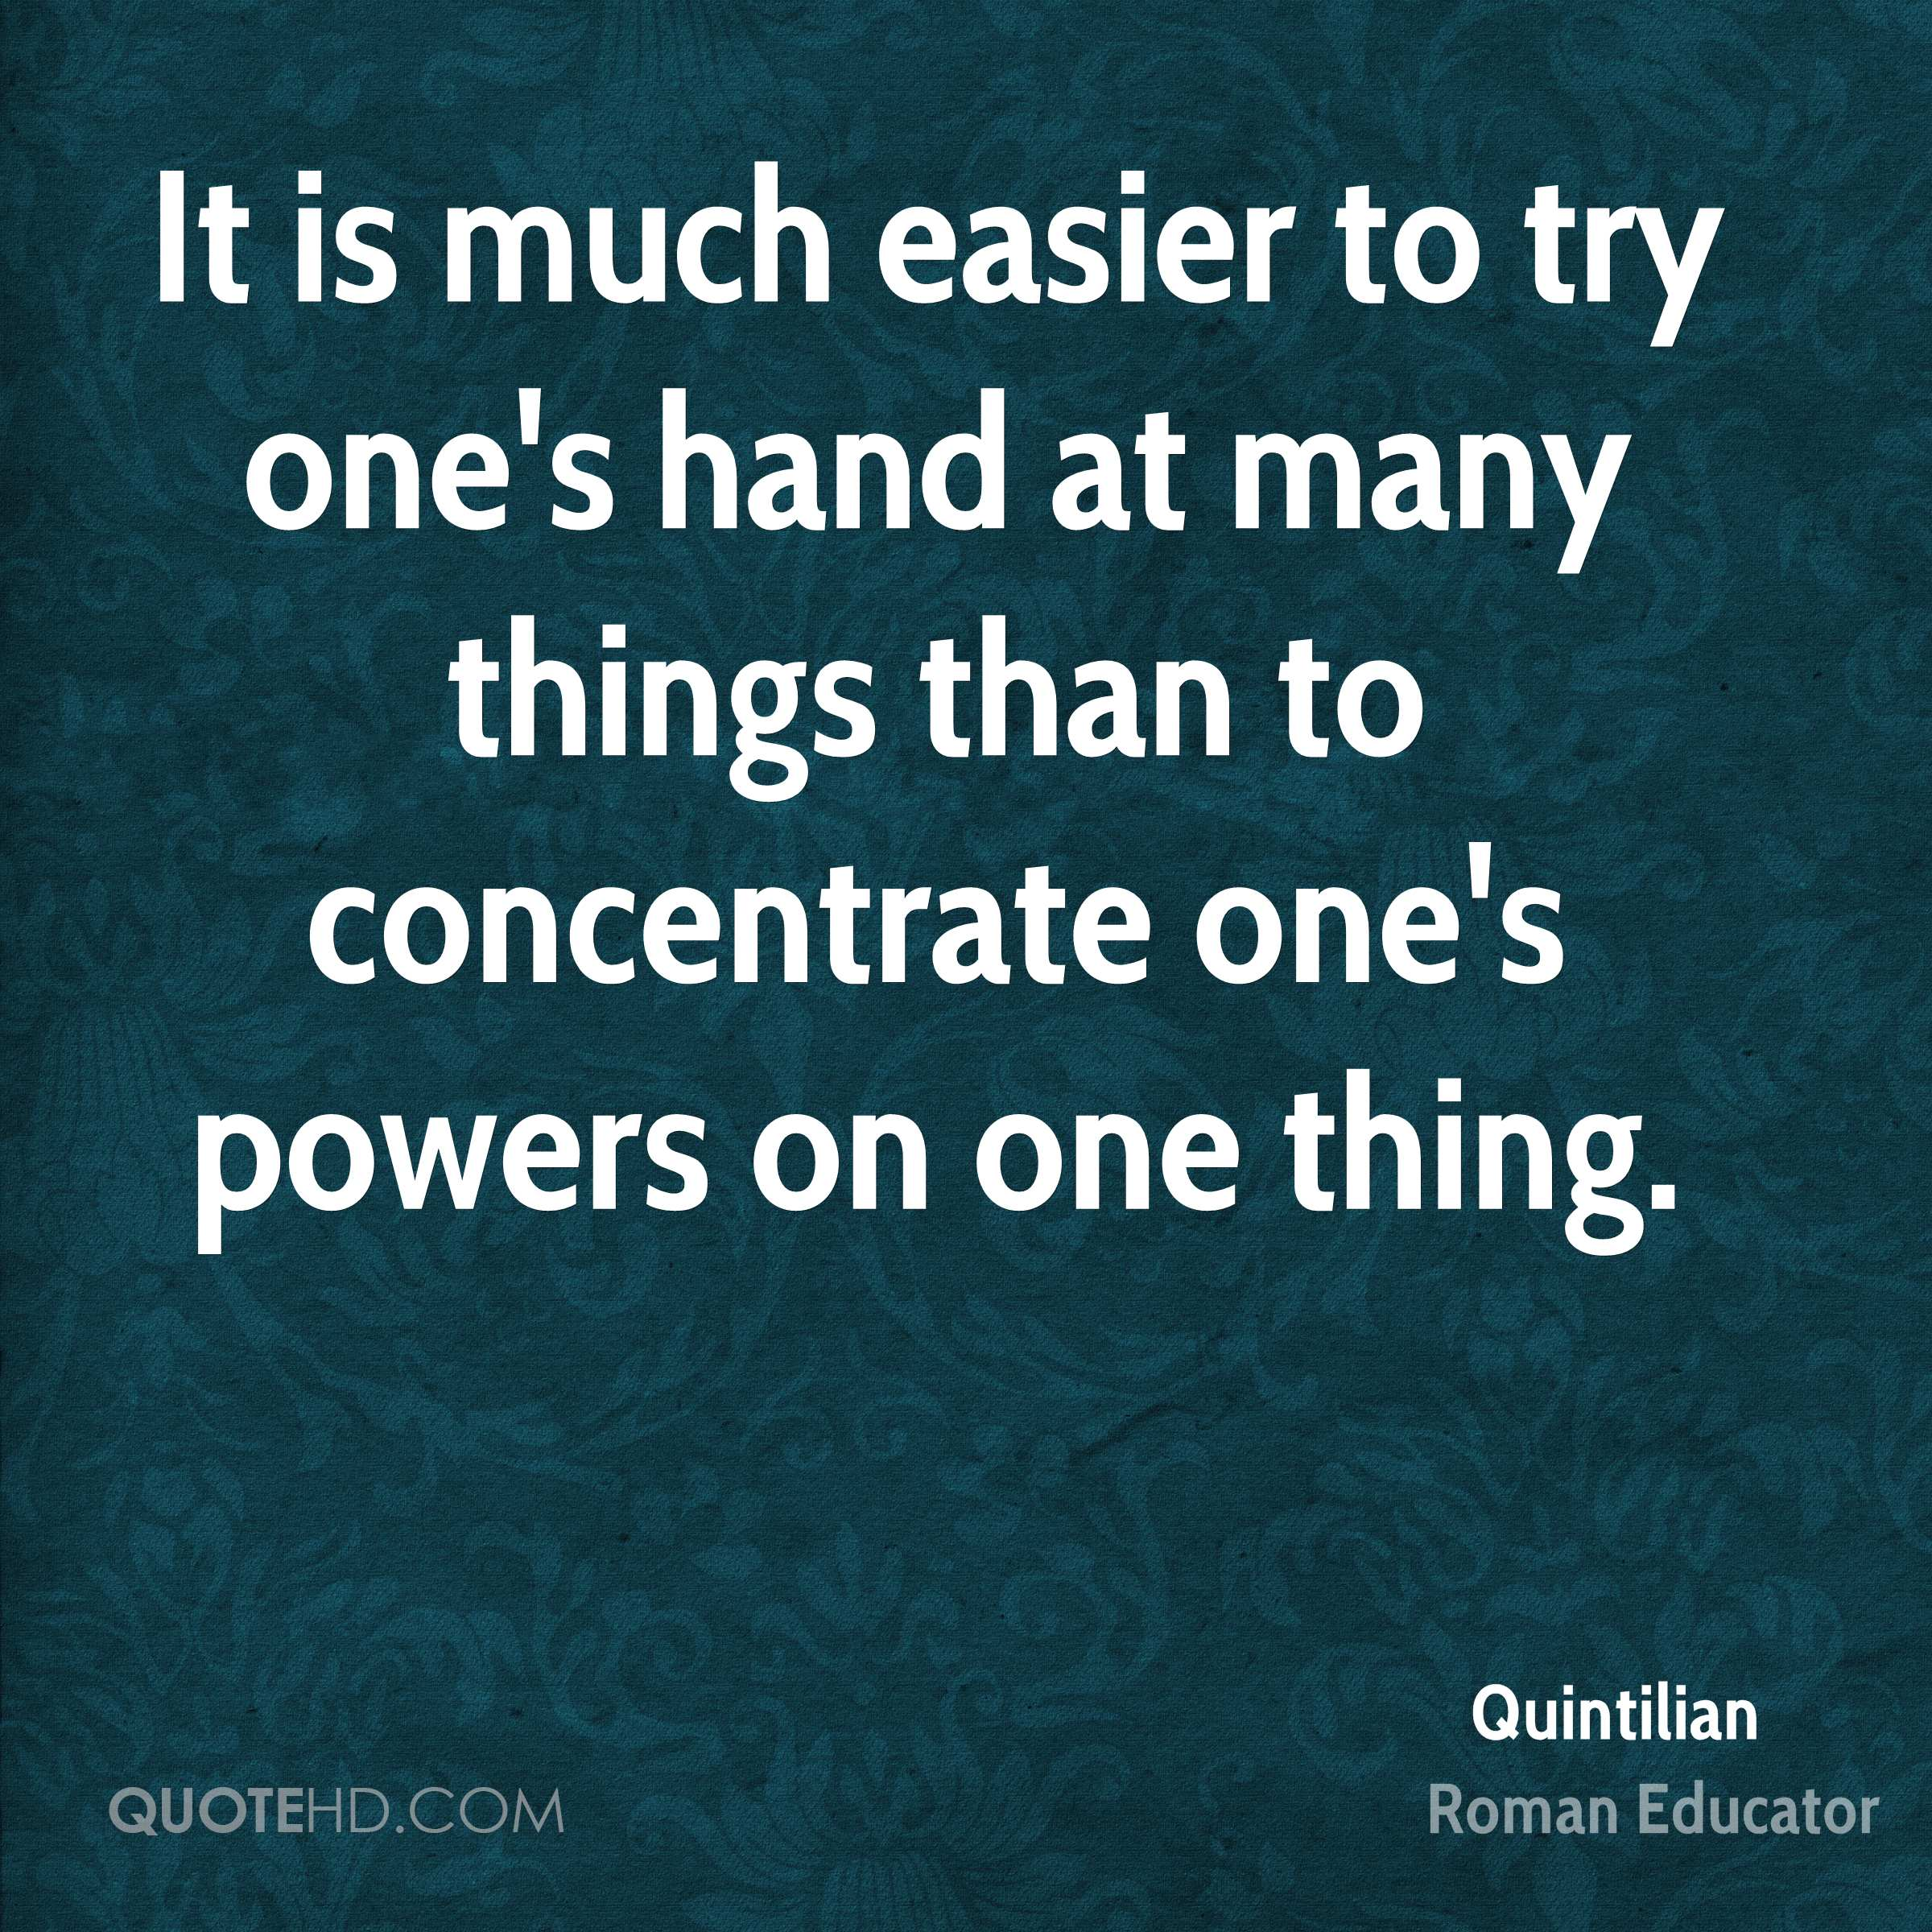 It is much easier to try one's hand at many things than to concentrate one's powers on one thing.